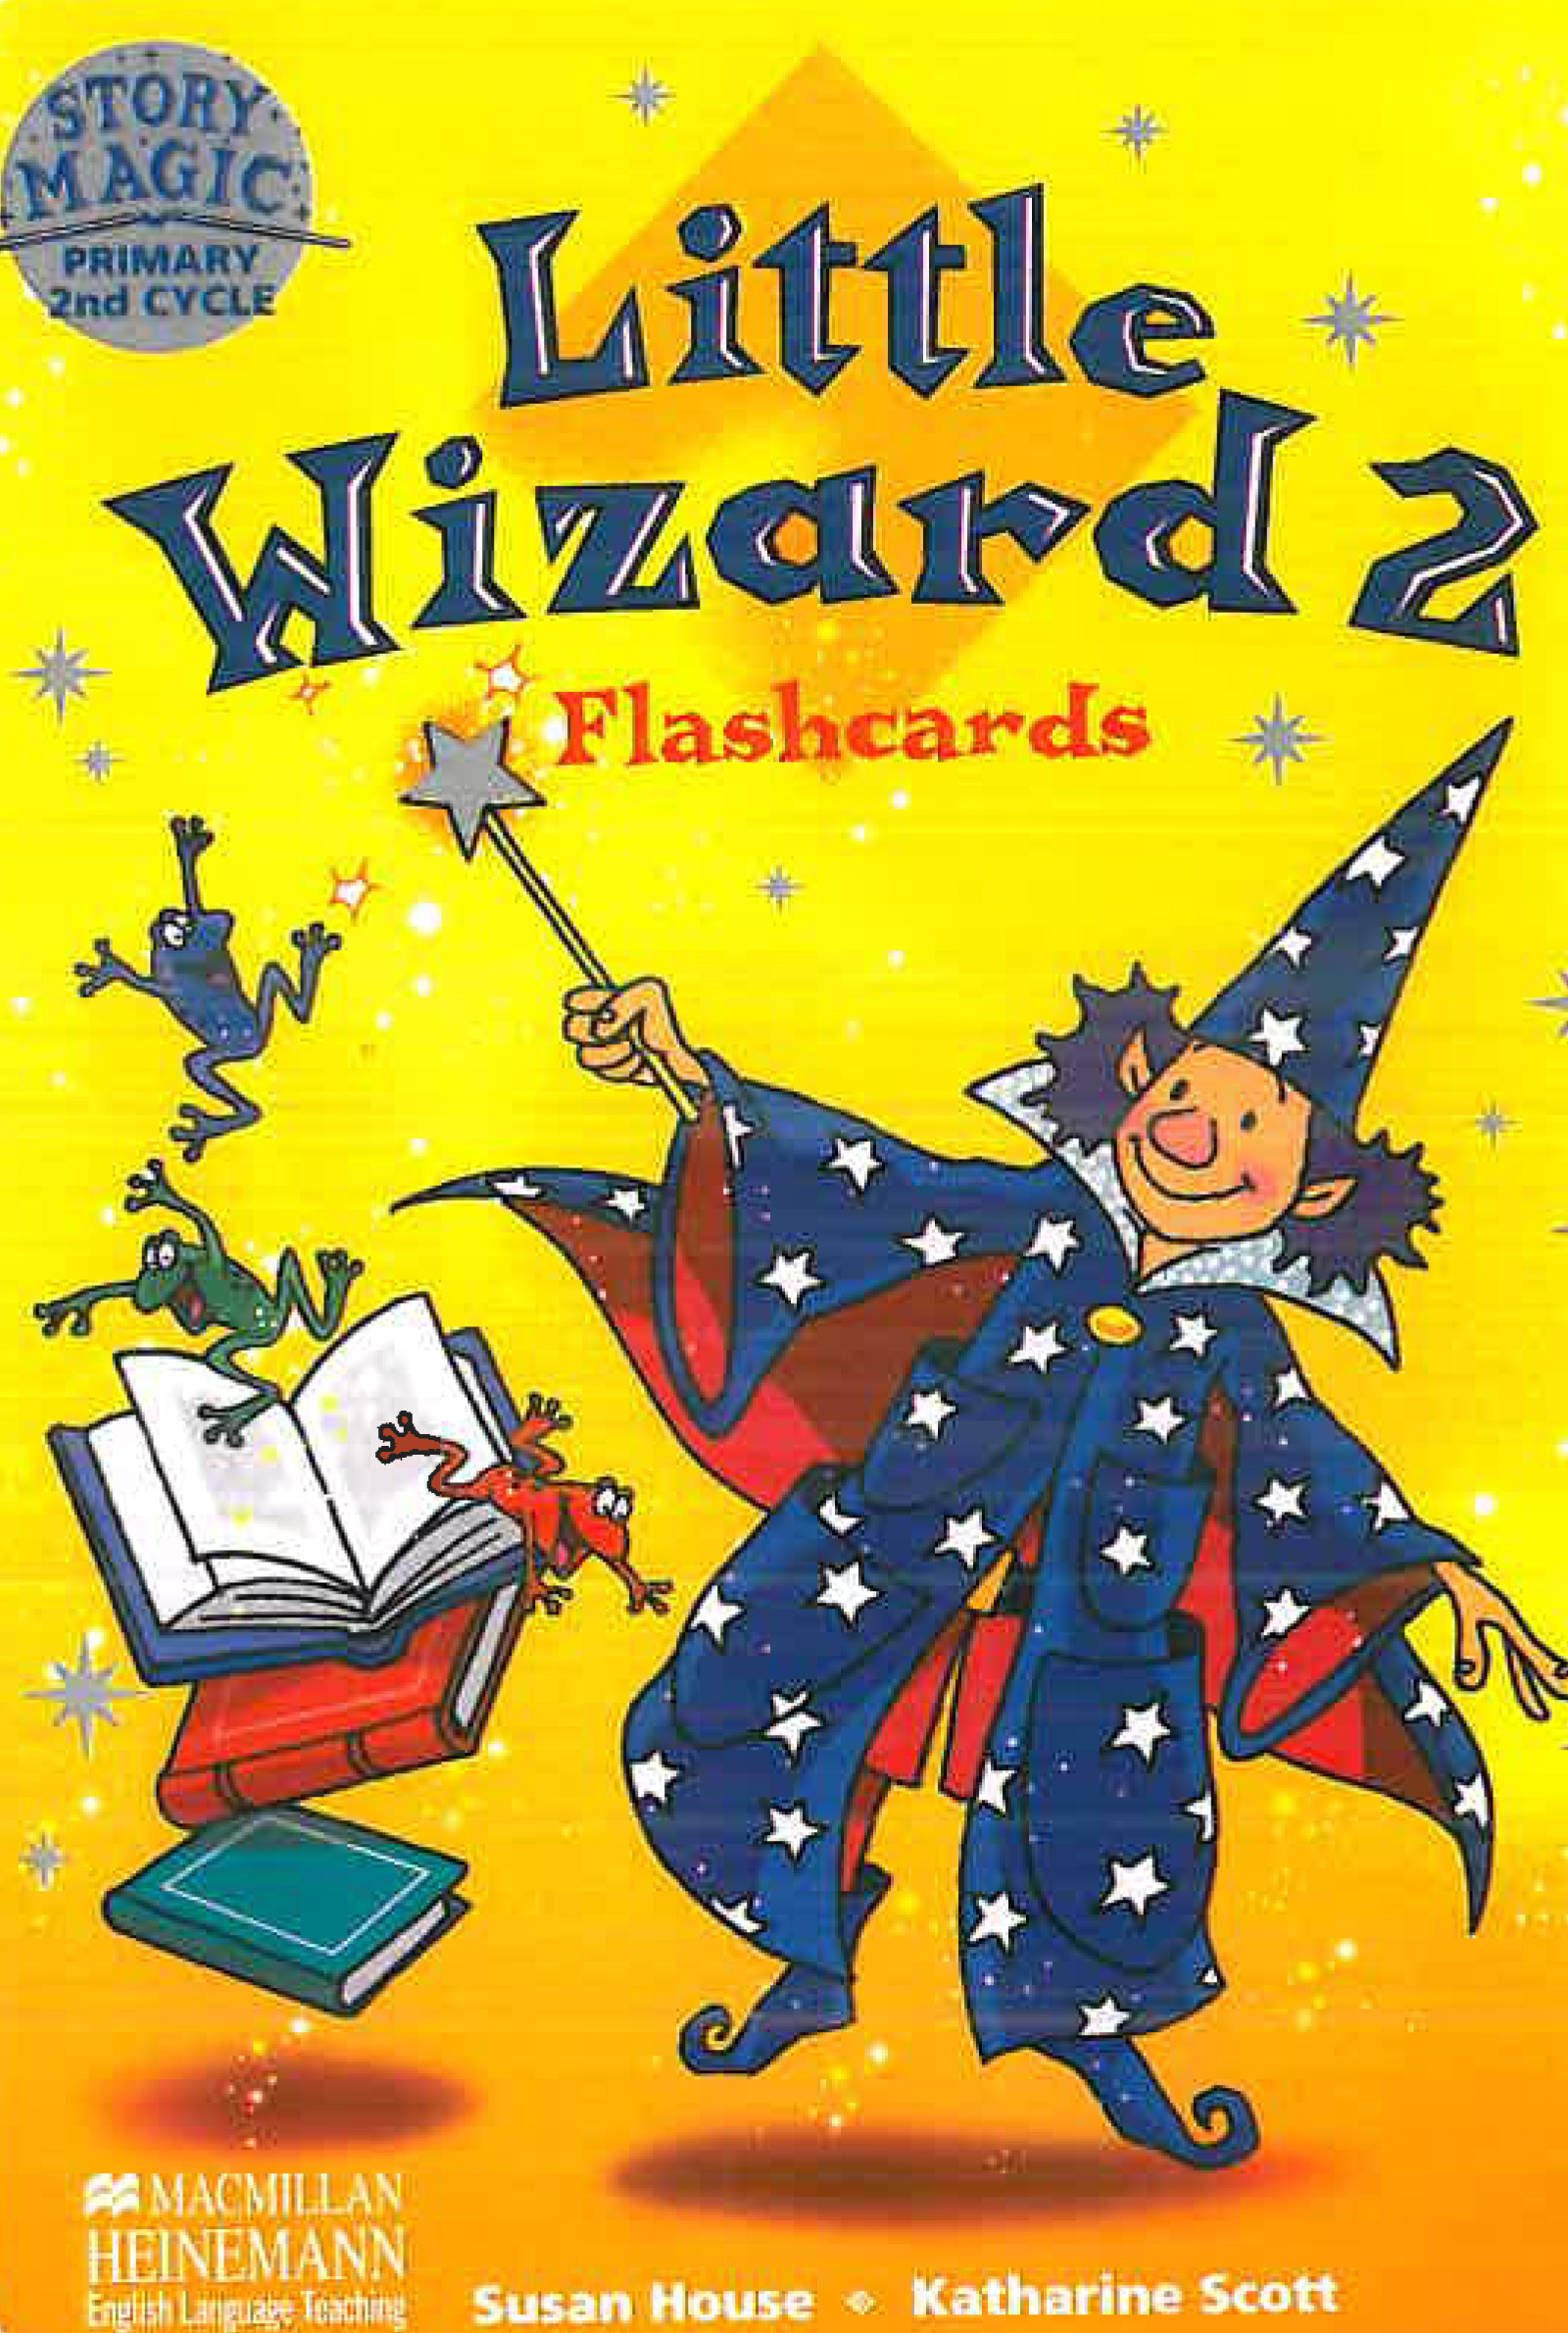 Story Magic 2 Flashcards